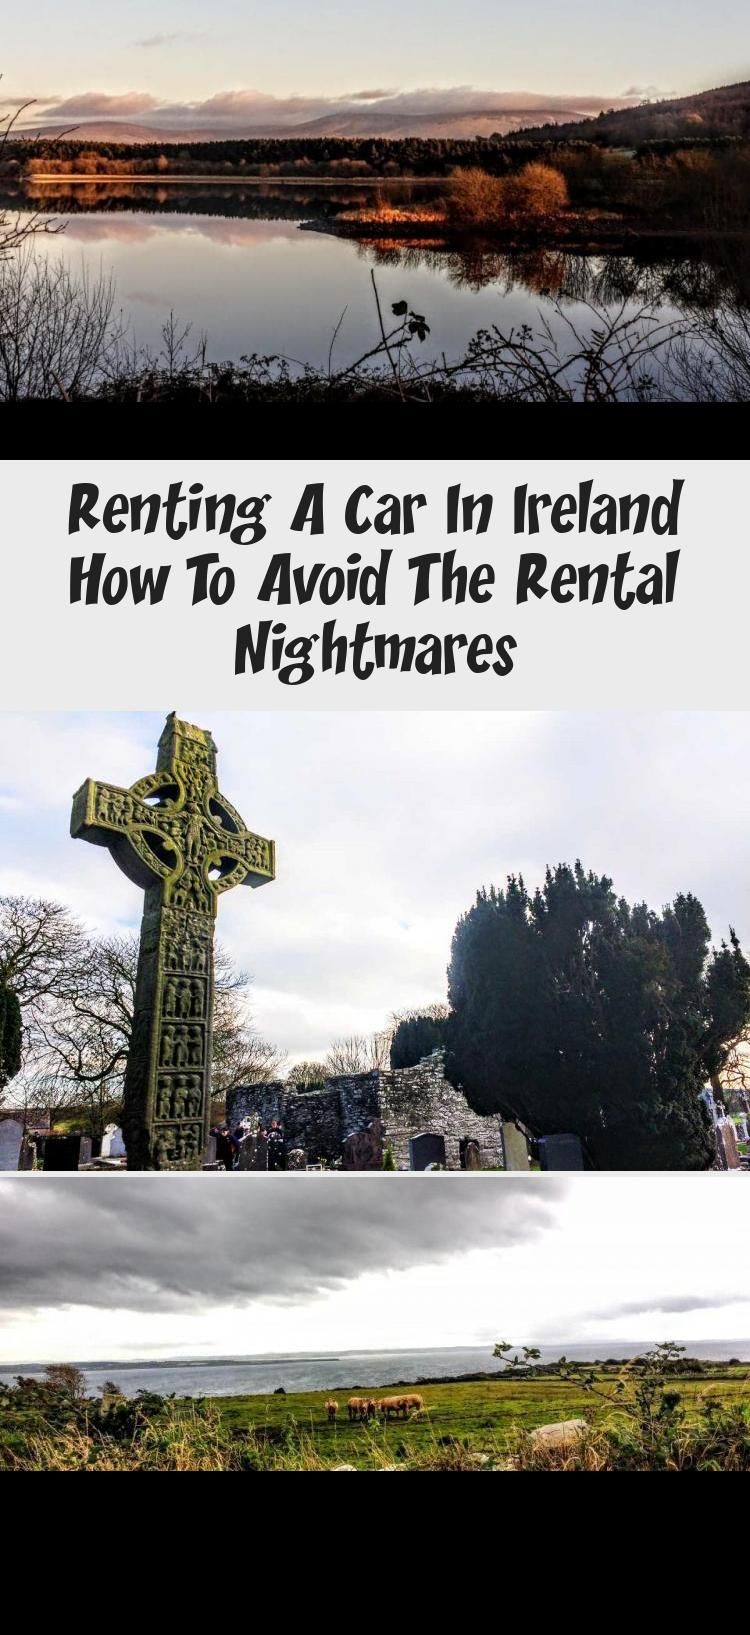 Renting A Car In Ireland How To Avoid The Rental